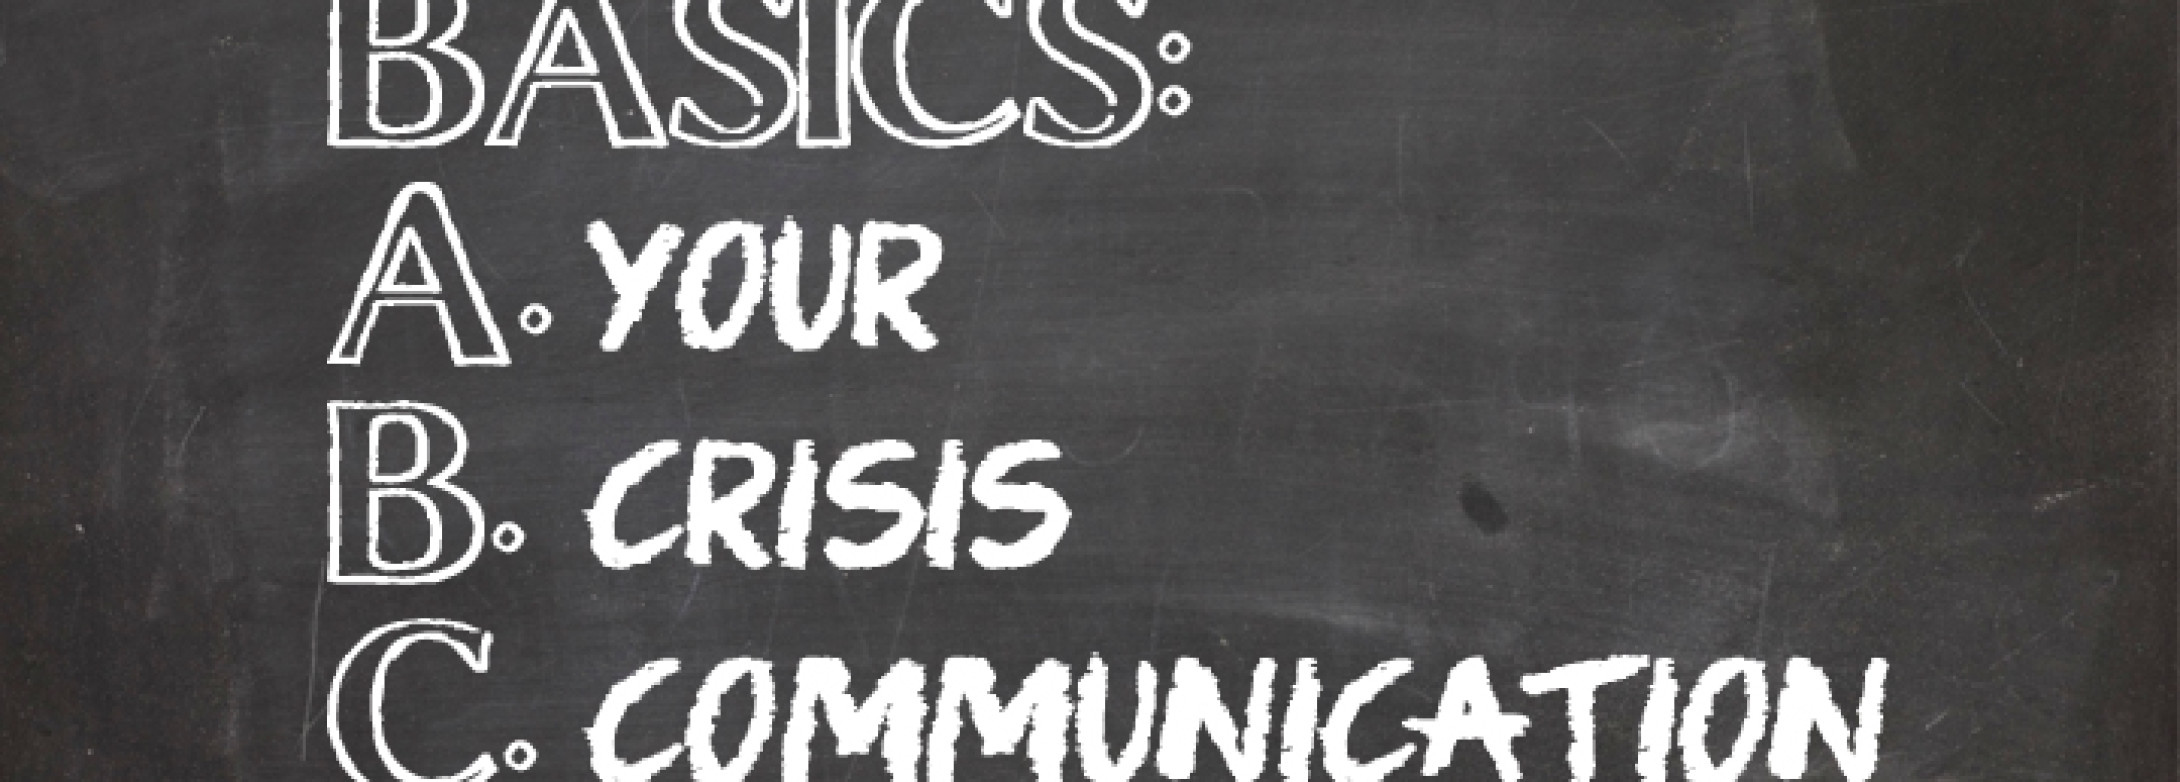 Basics For Crisis Communications